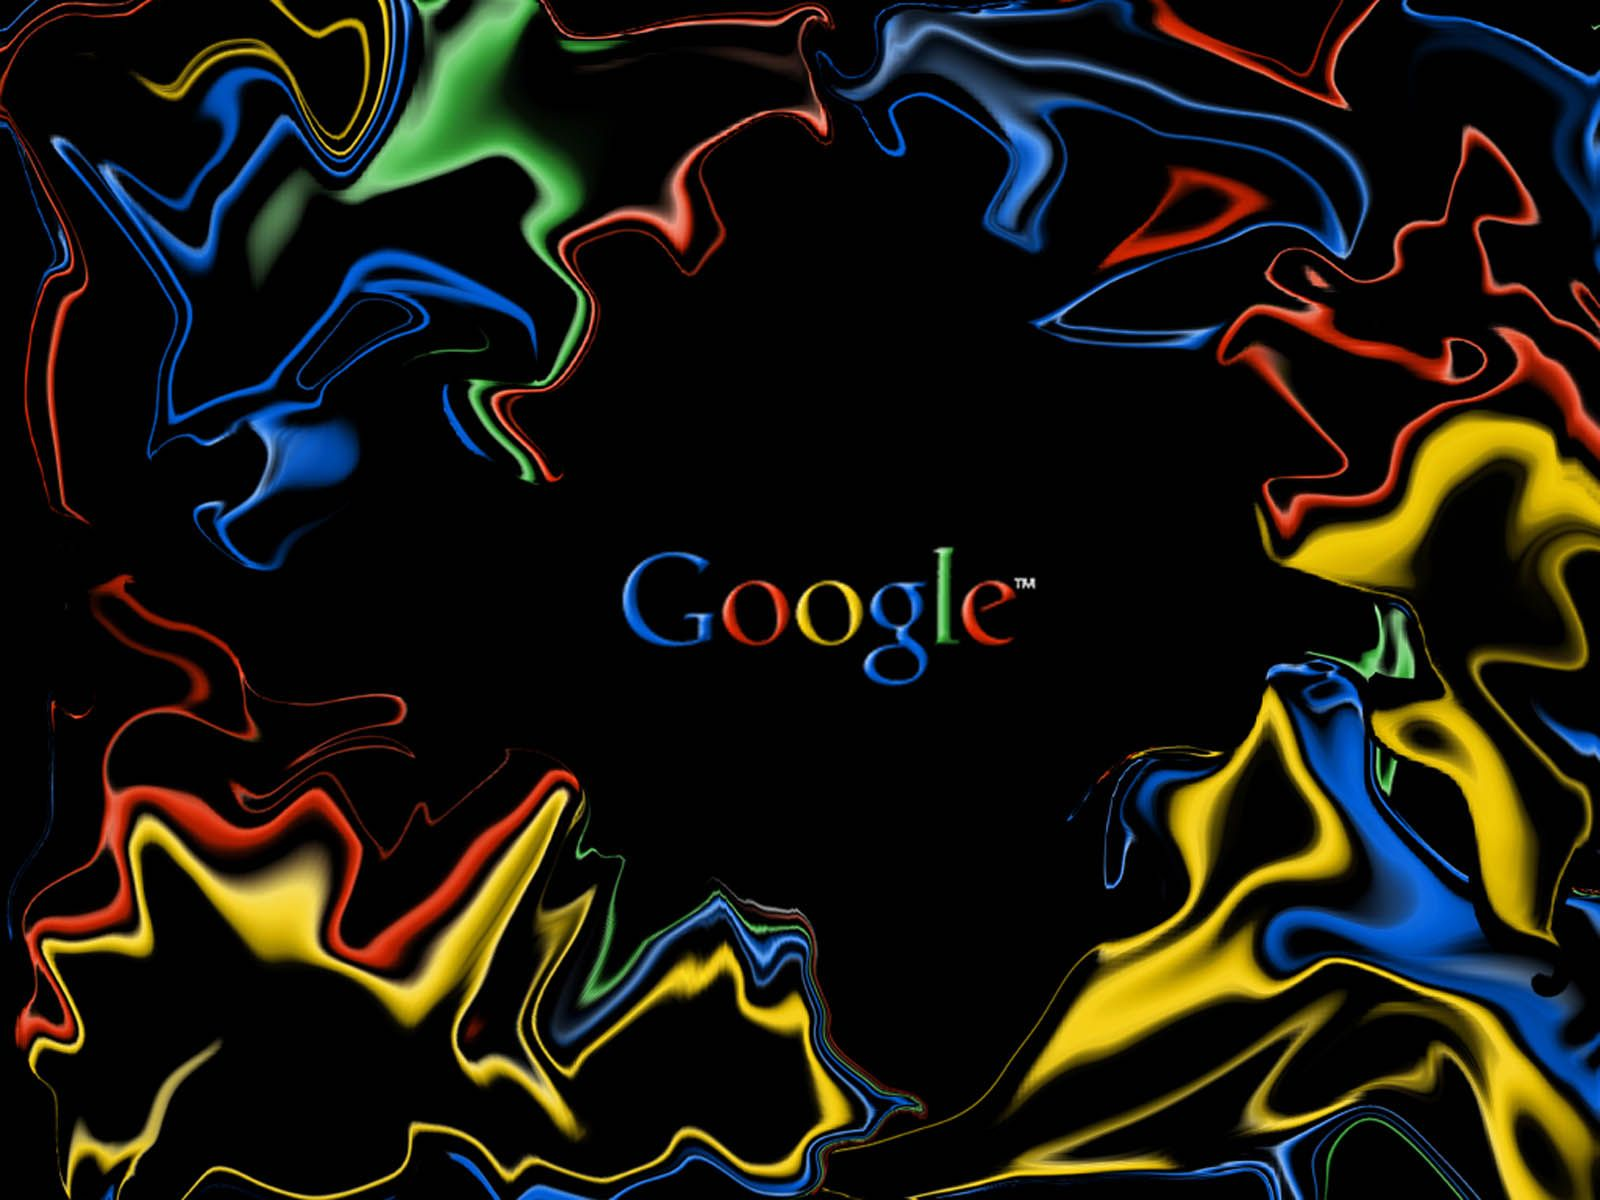 backgrounds images for google | background editing picsart